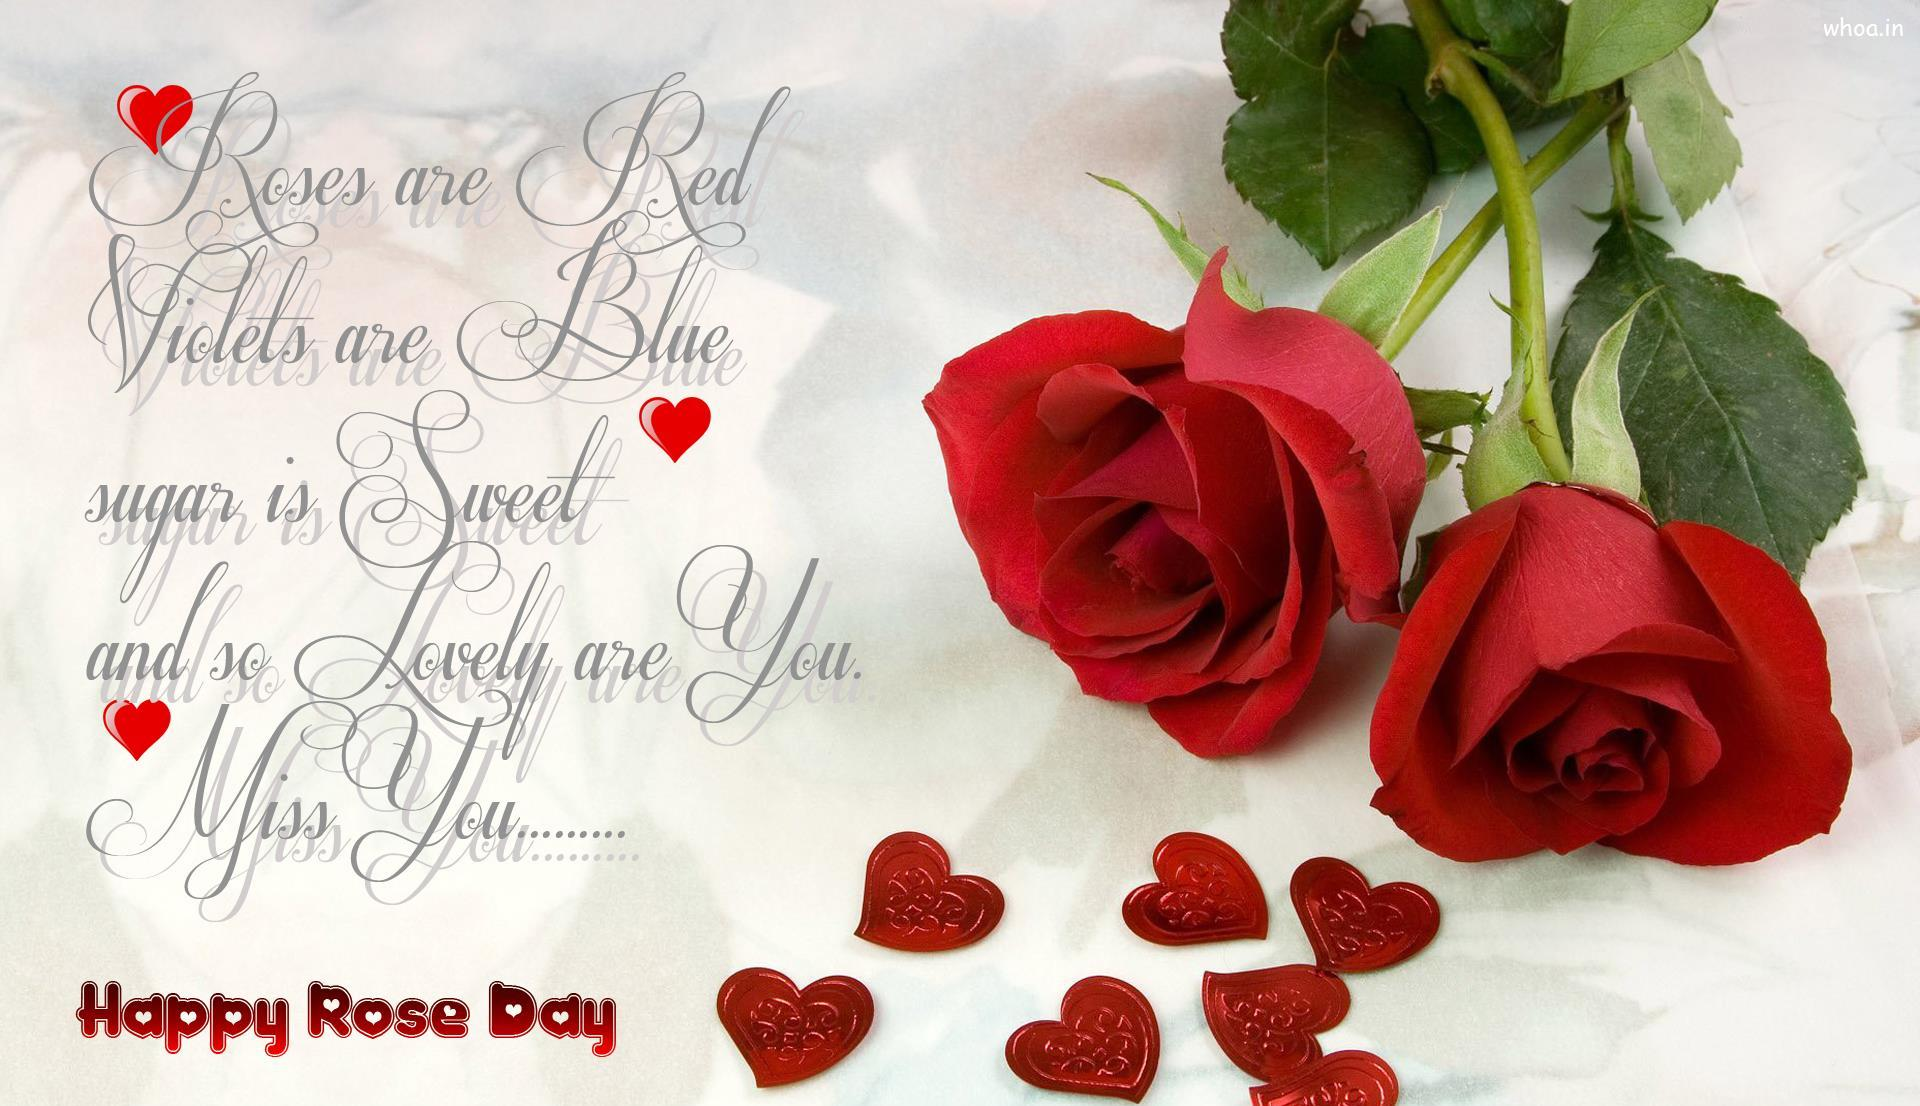 happy-rose-day-wallpaper-greetings-for-rose-day-and-quotes.